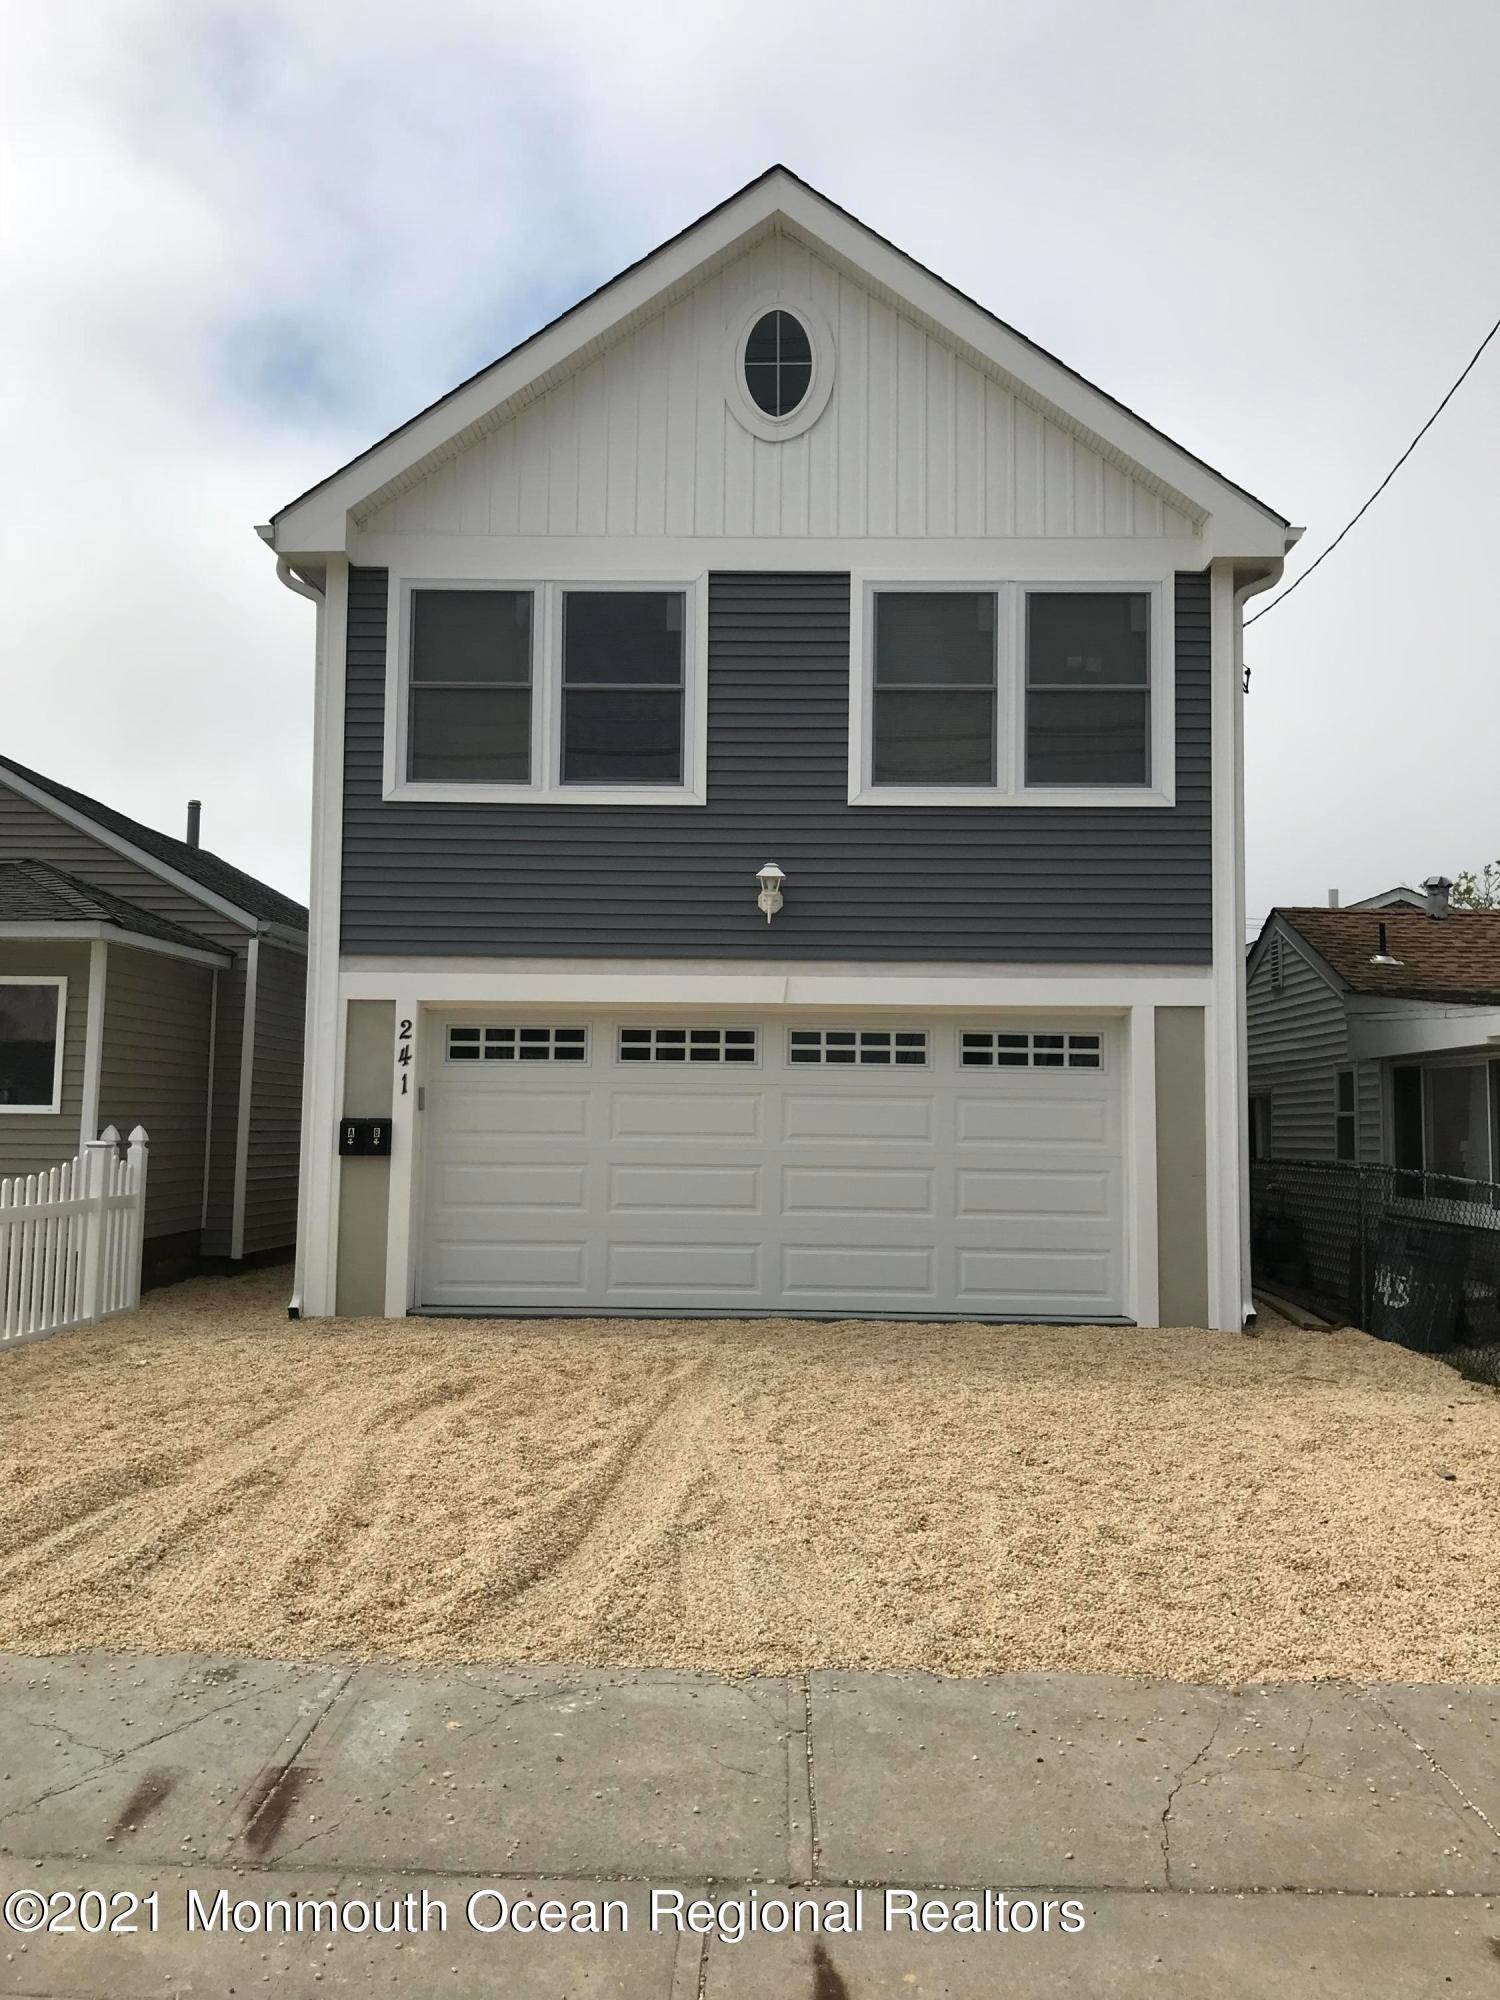 Multi-Family Homes for Sale at 241 Hiering Avenue Seaside Heights, New Jersey 08751 United States